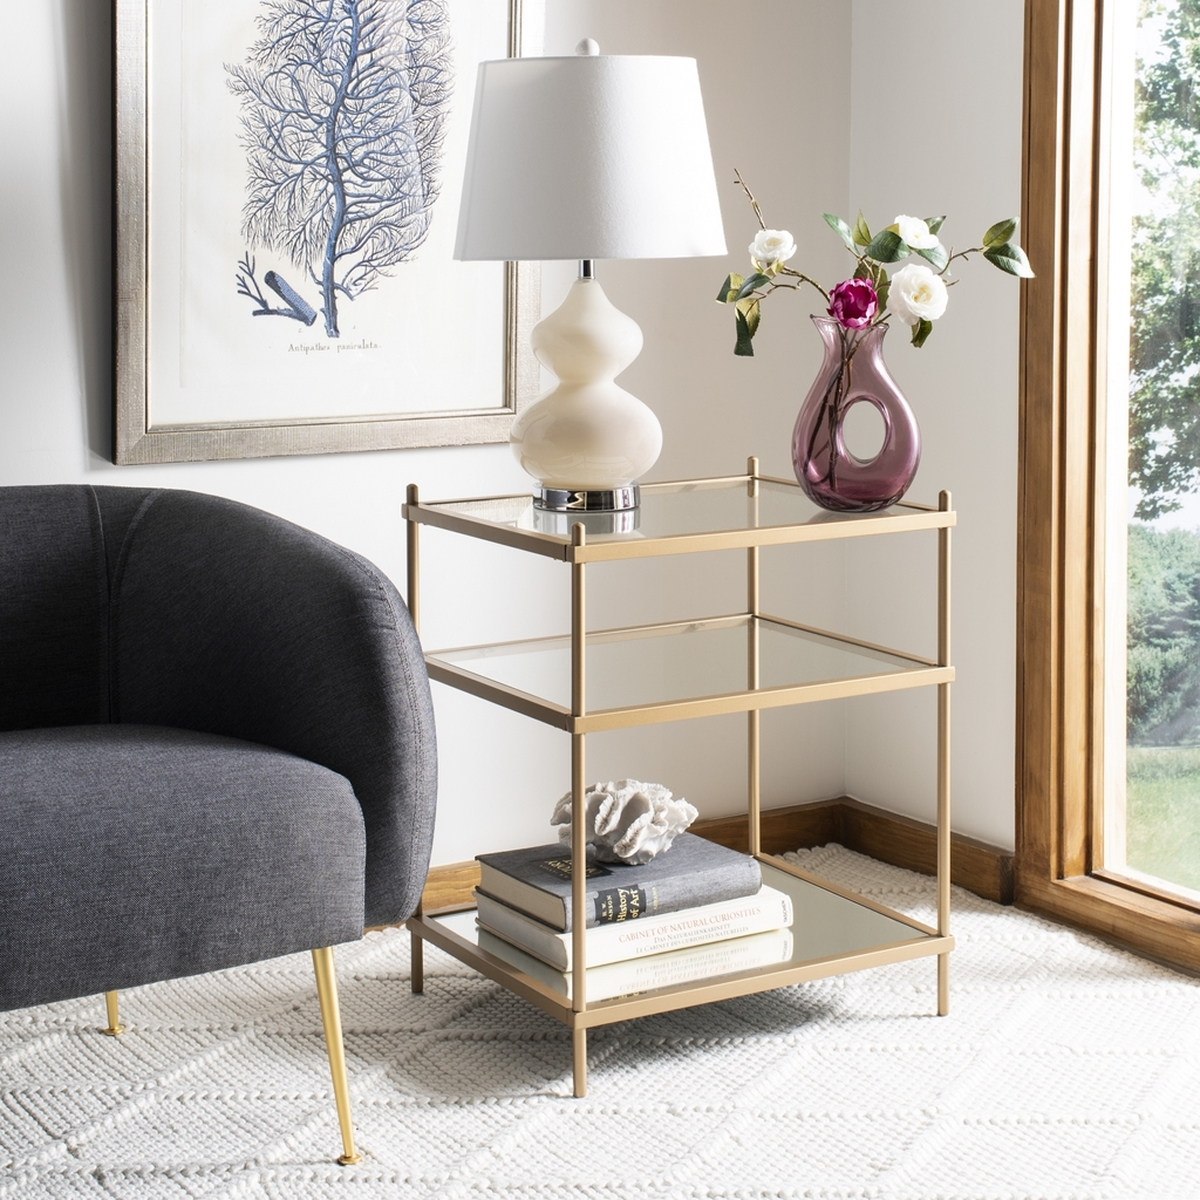 accent tables furniture safavieh room table behind couch monarch hall console dark taupe beacon hill breakfast with stools dinette sets nautical mini pendant lights cast aluminum